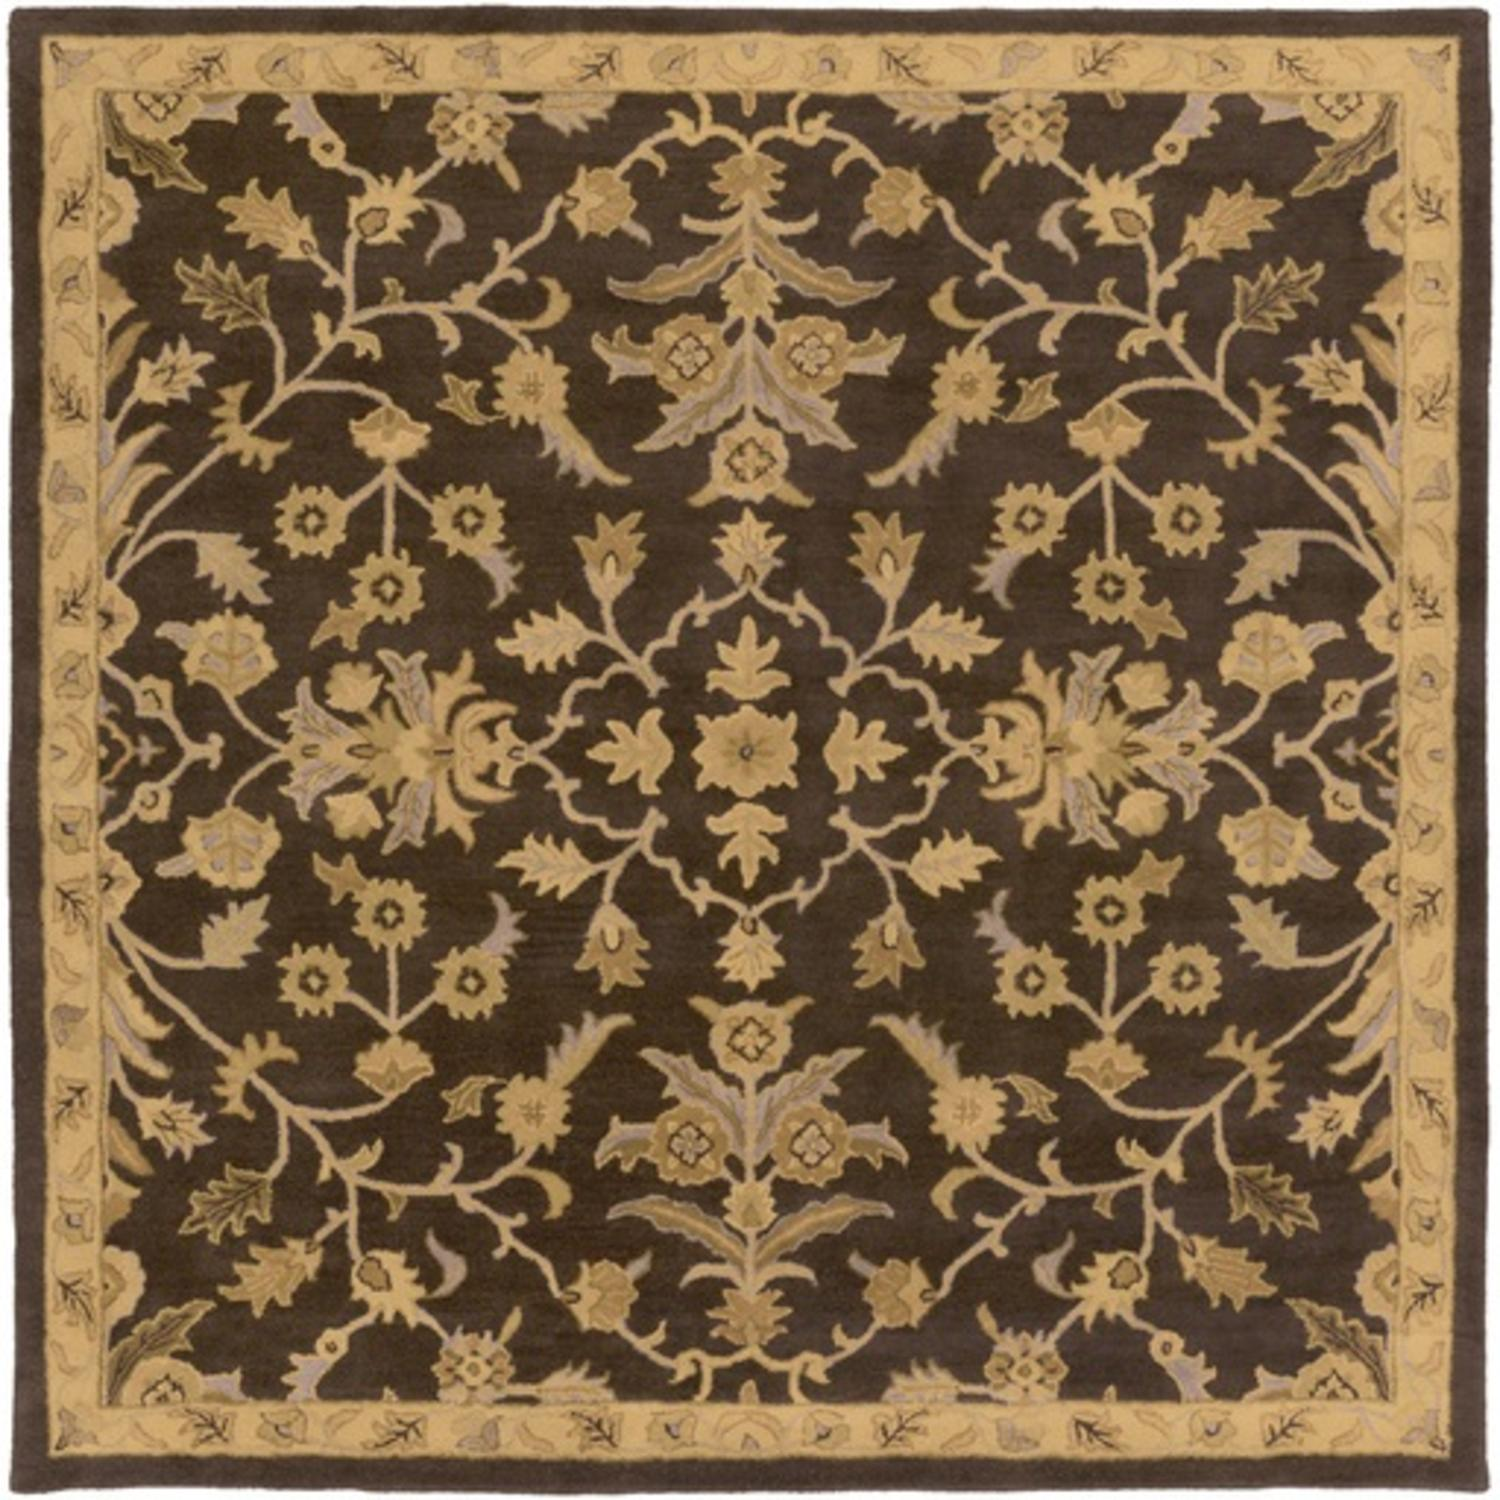 8' x 8' French Elegance Espresso, Gray and Gold Hand Tufted Square Wool Area Throw Rug